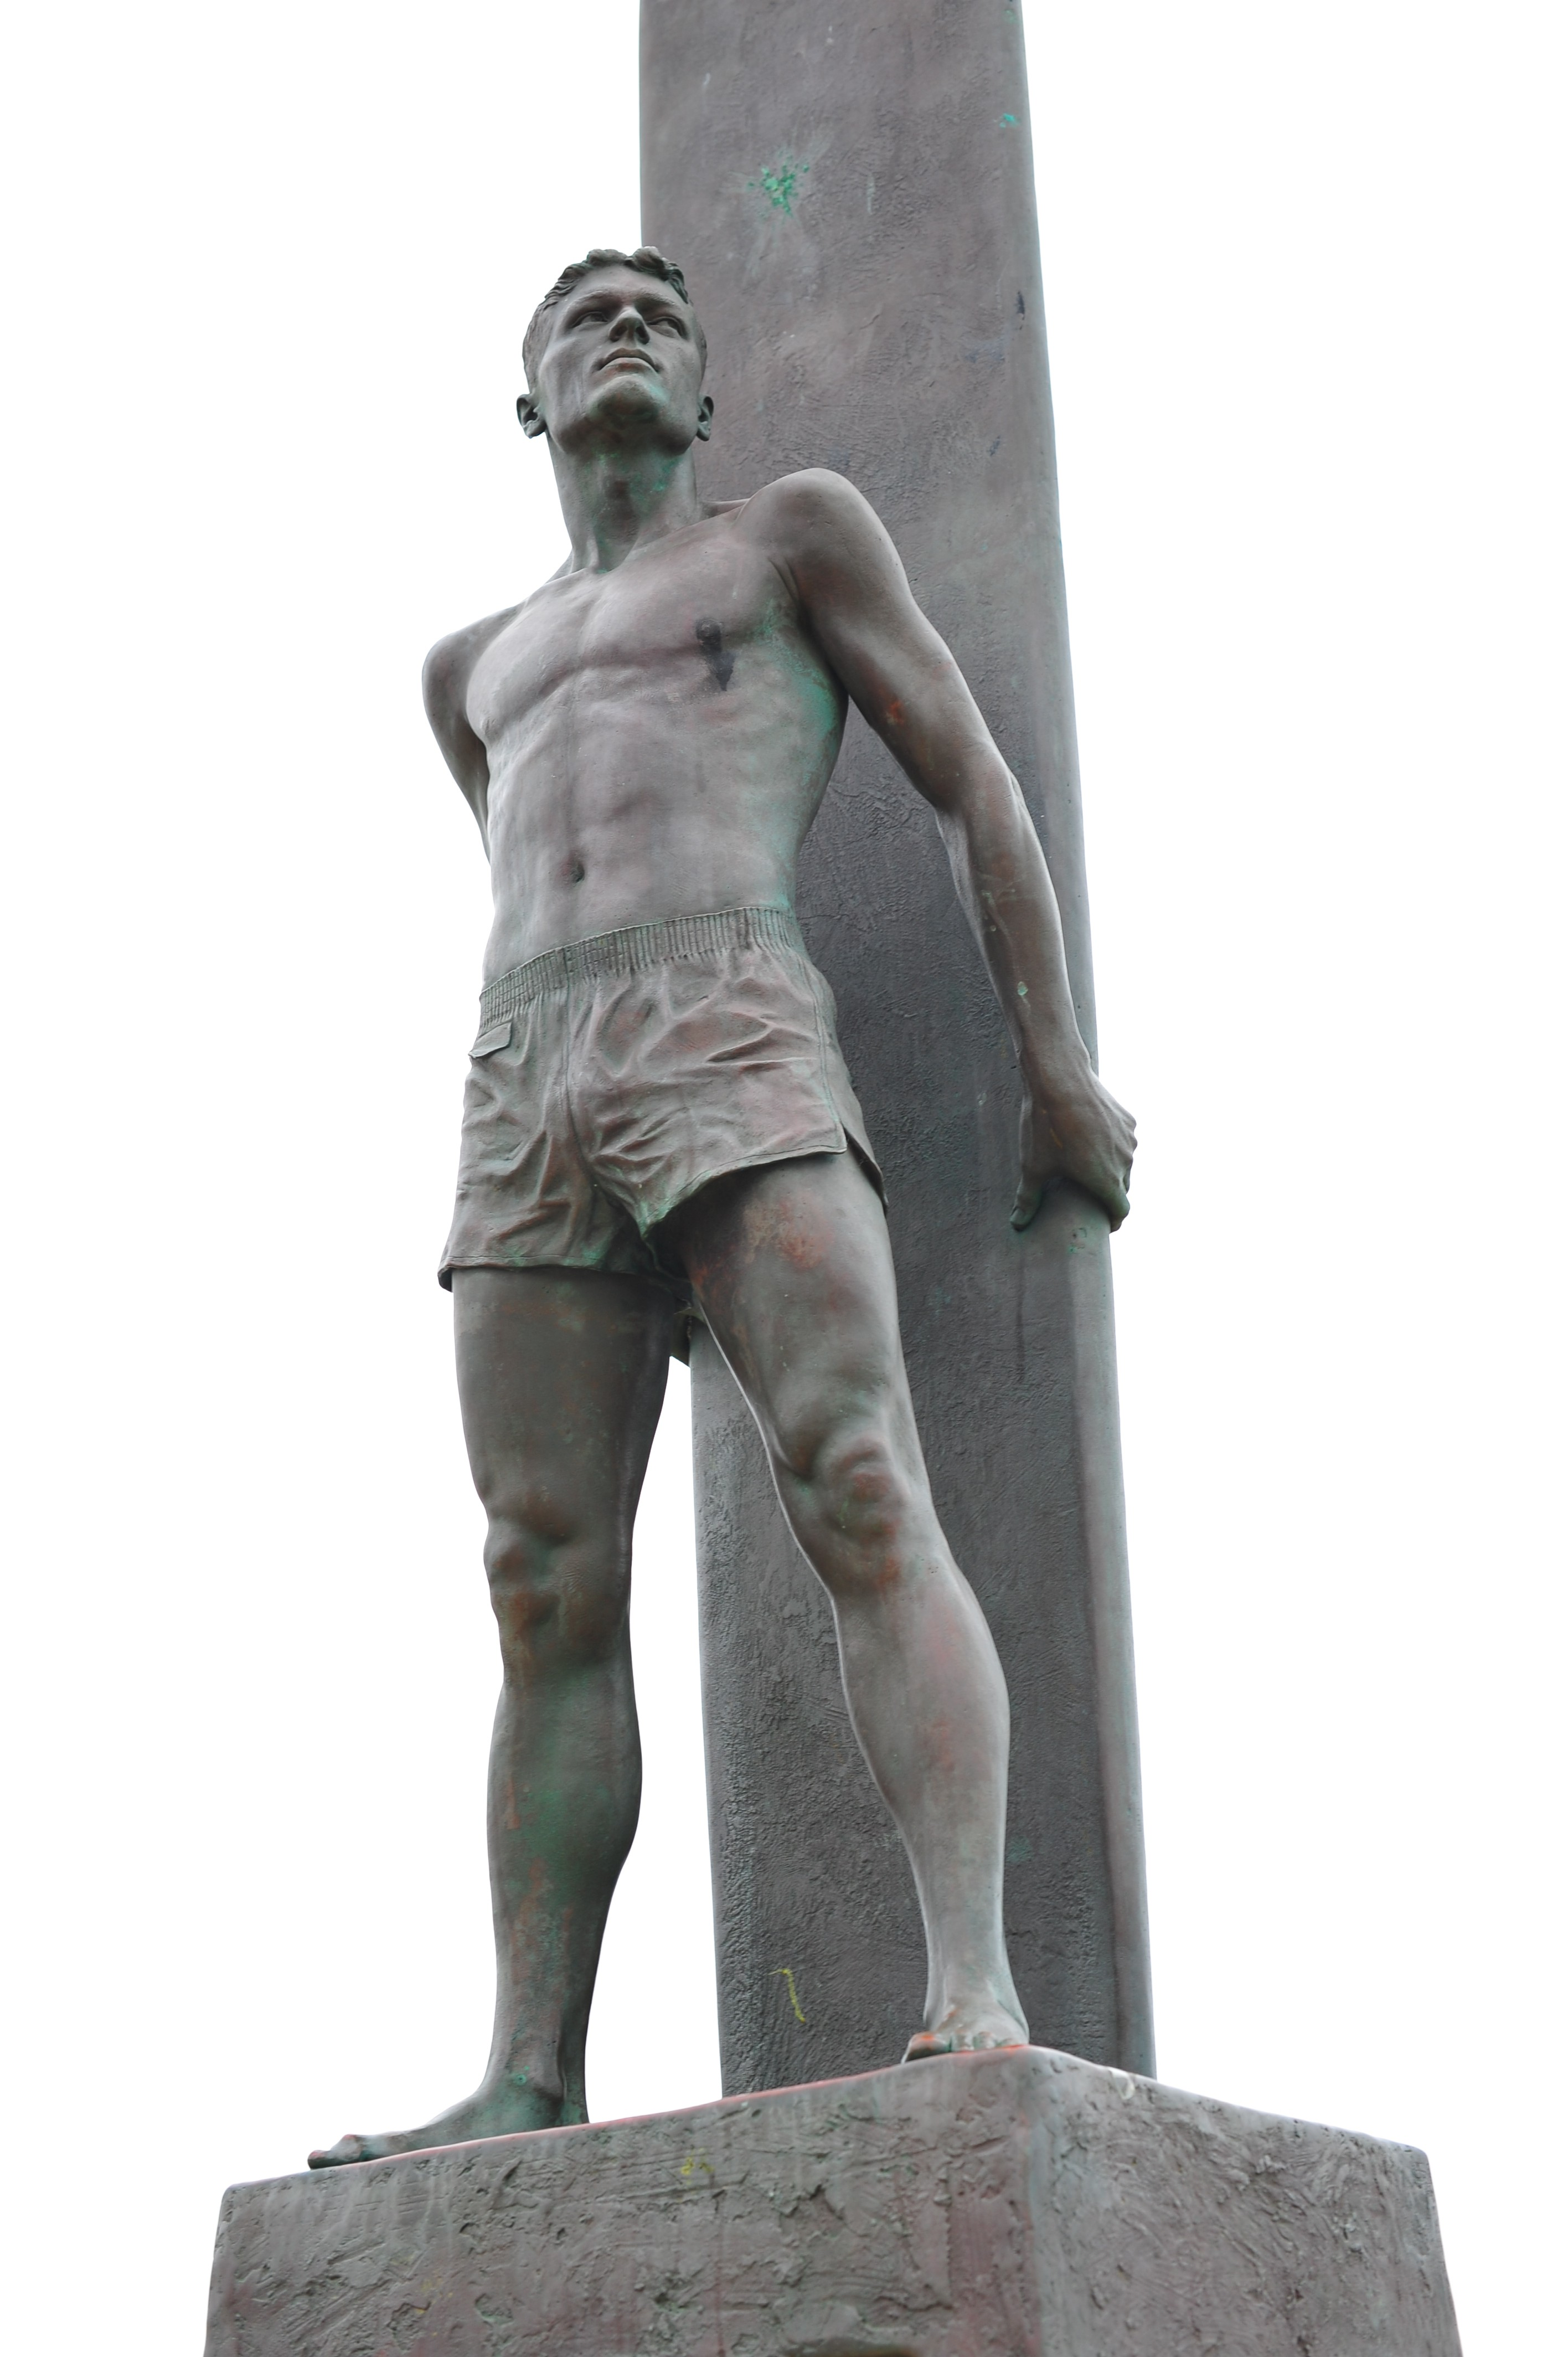 On Hot Gay Statues